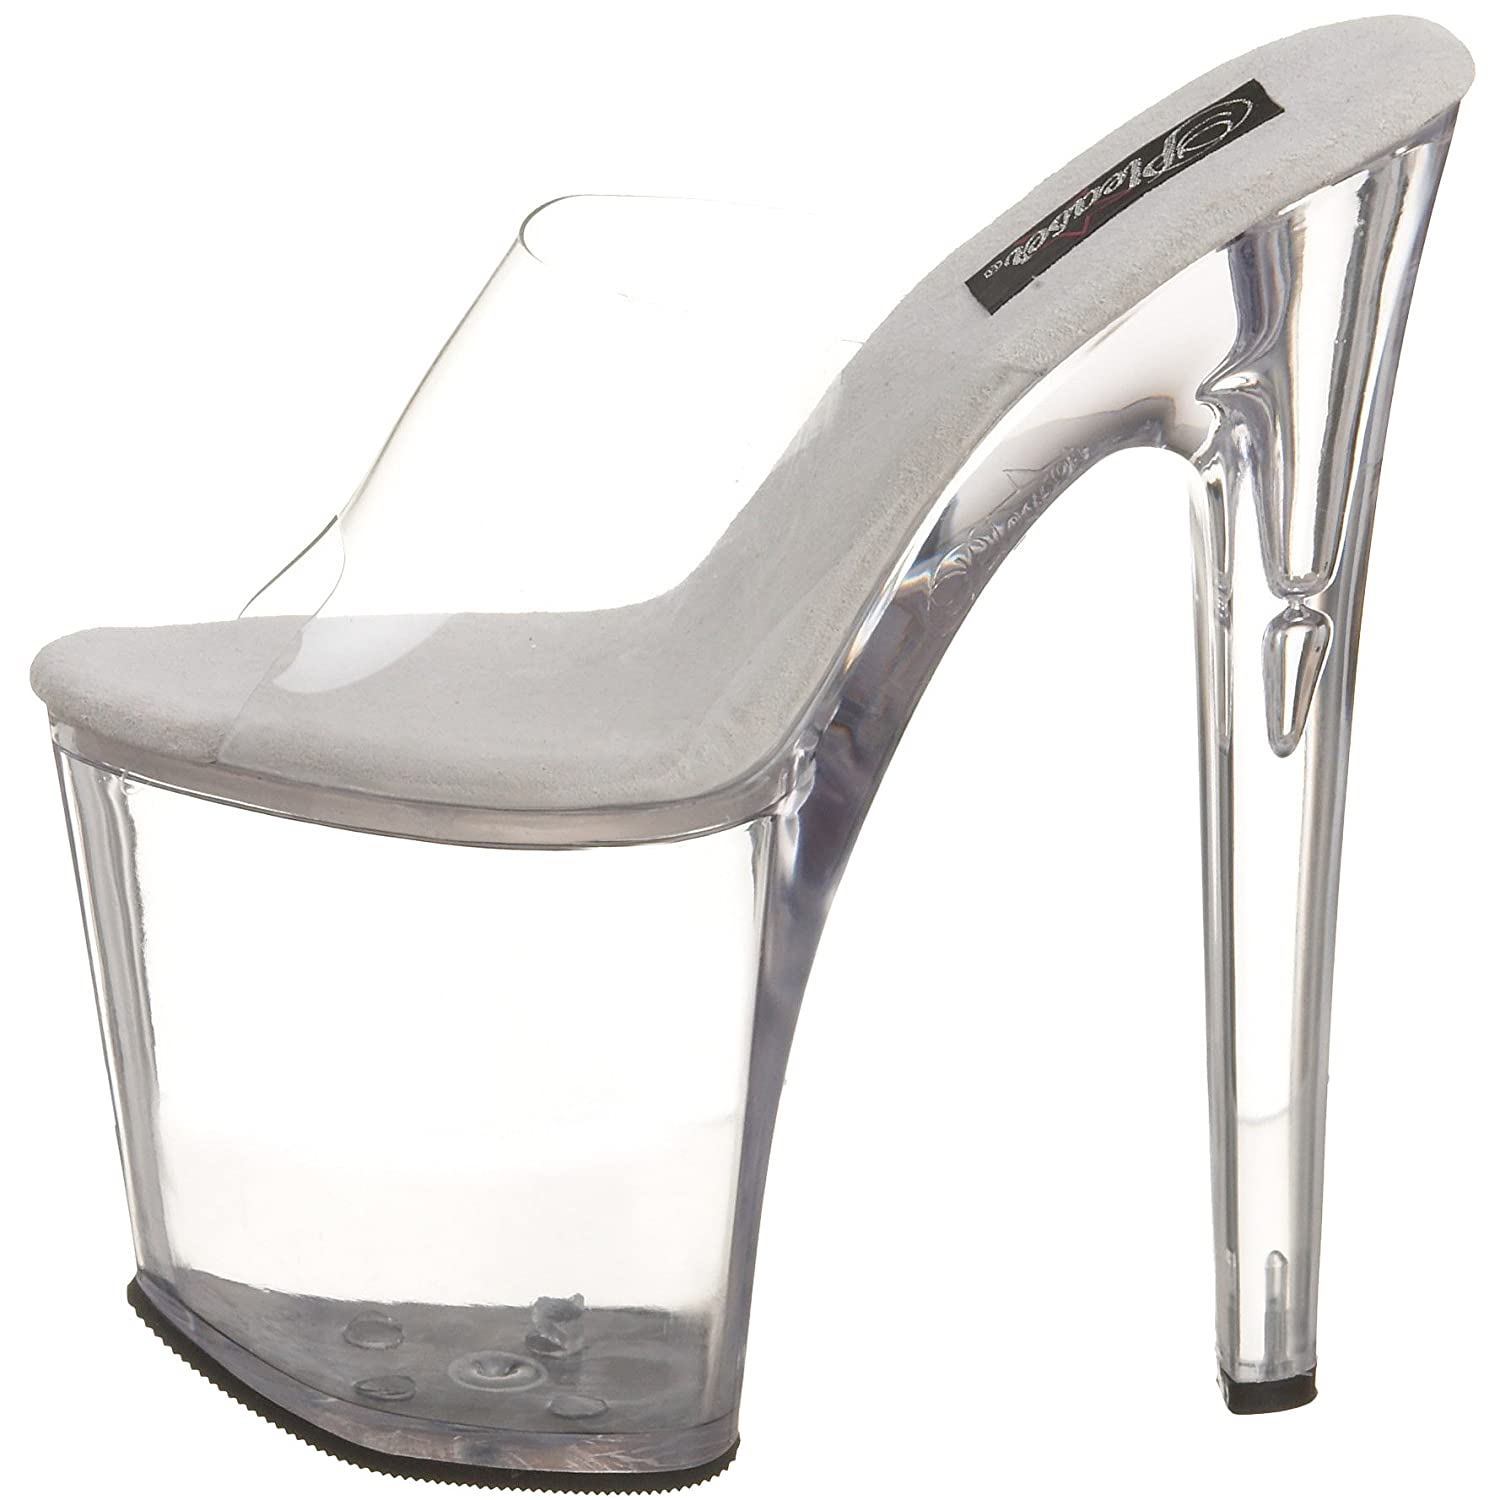 Pleaser Women's Xteme-801 Platform Slide B0016BRD2K 10 B(M) US|Clear